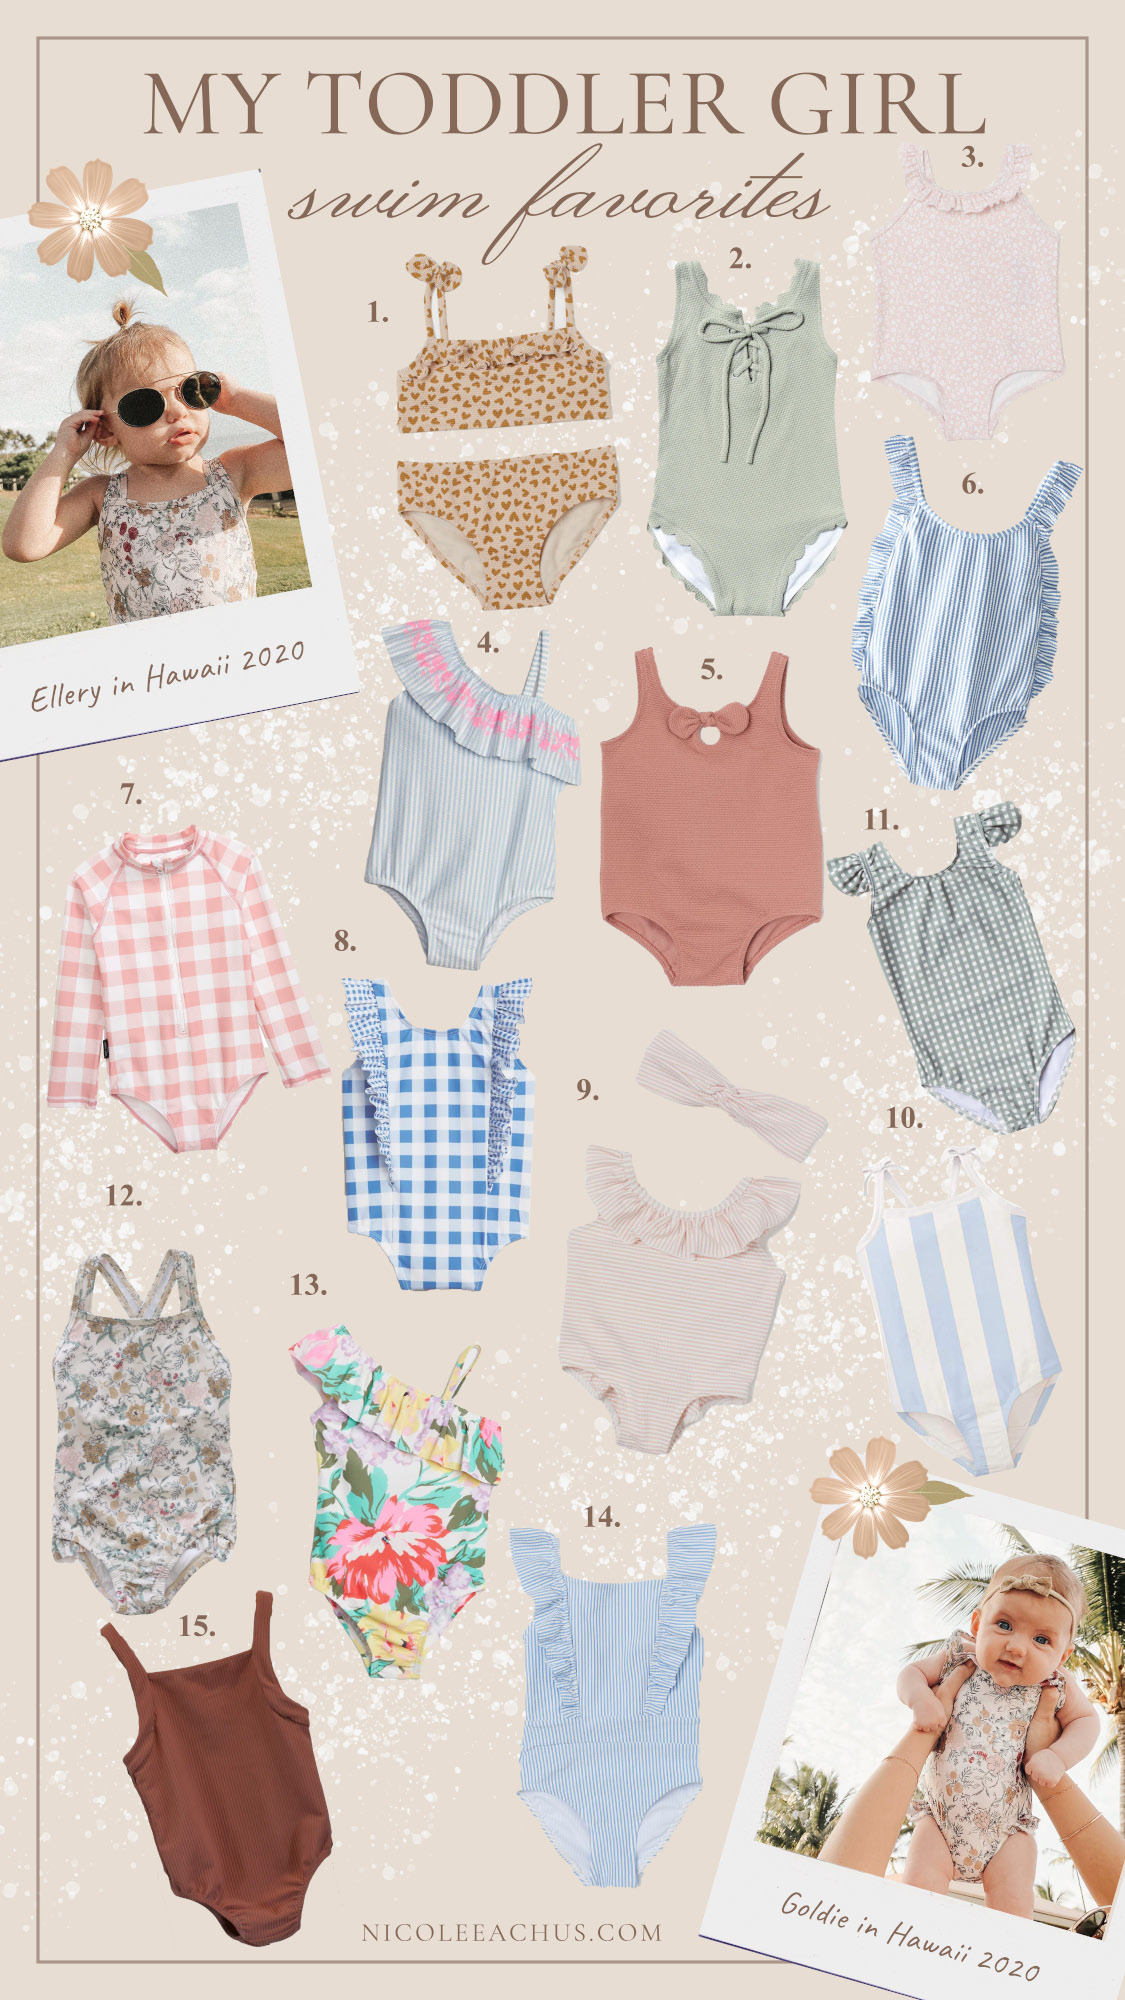 My toddler girl swimsuit favorites for the season